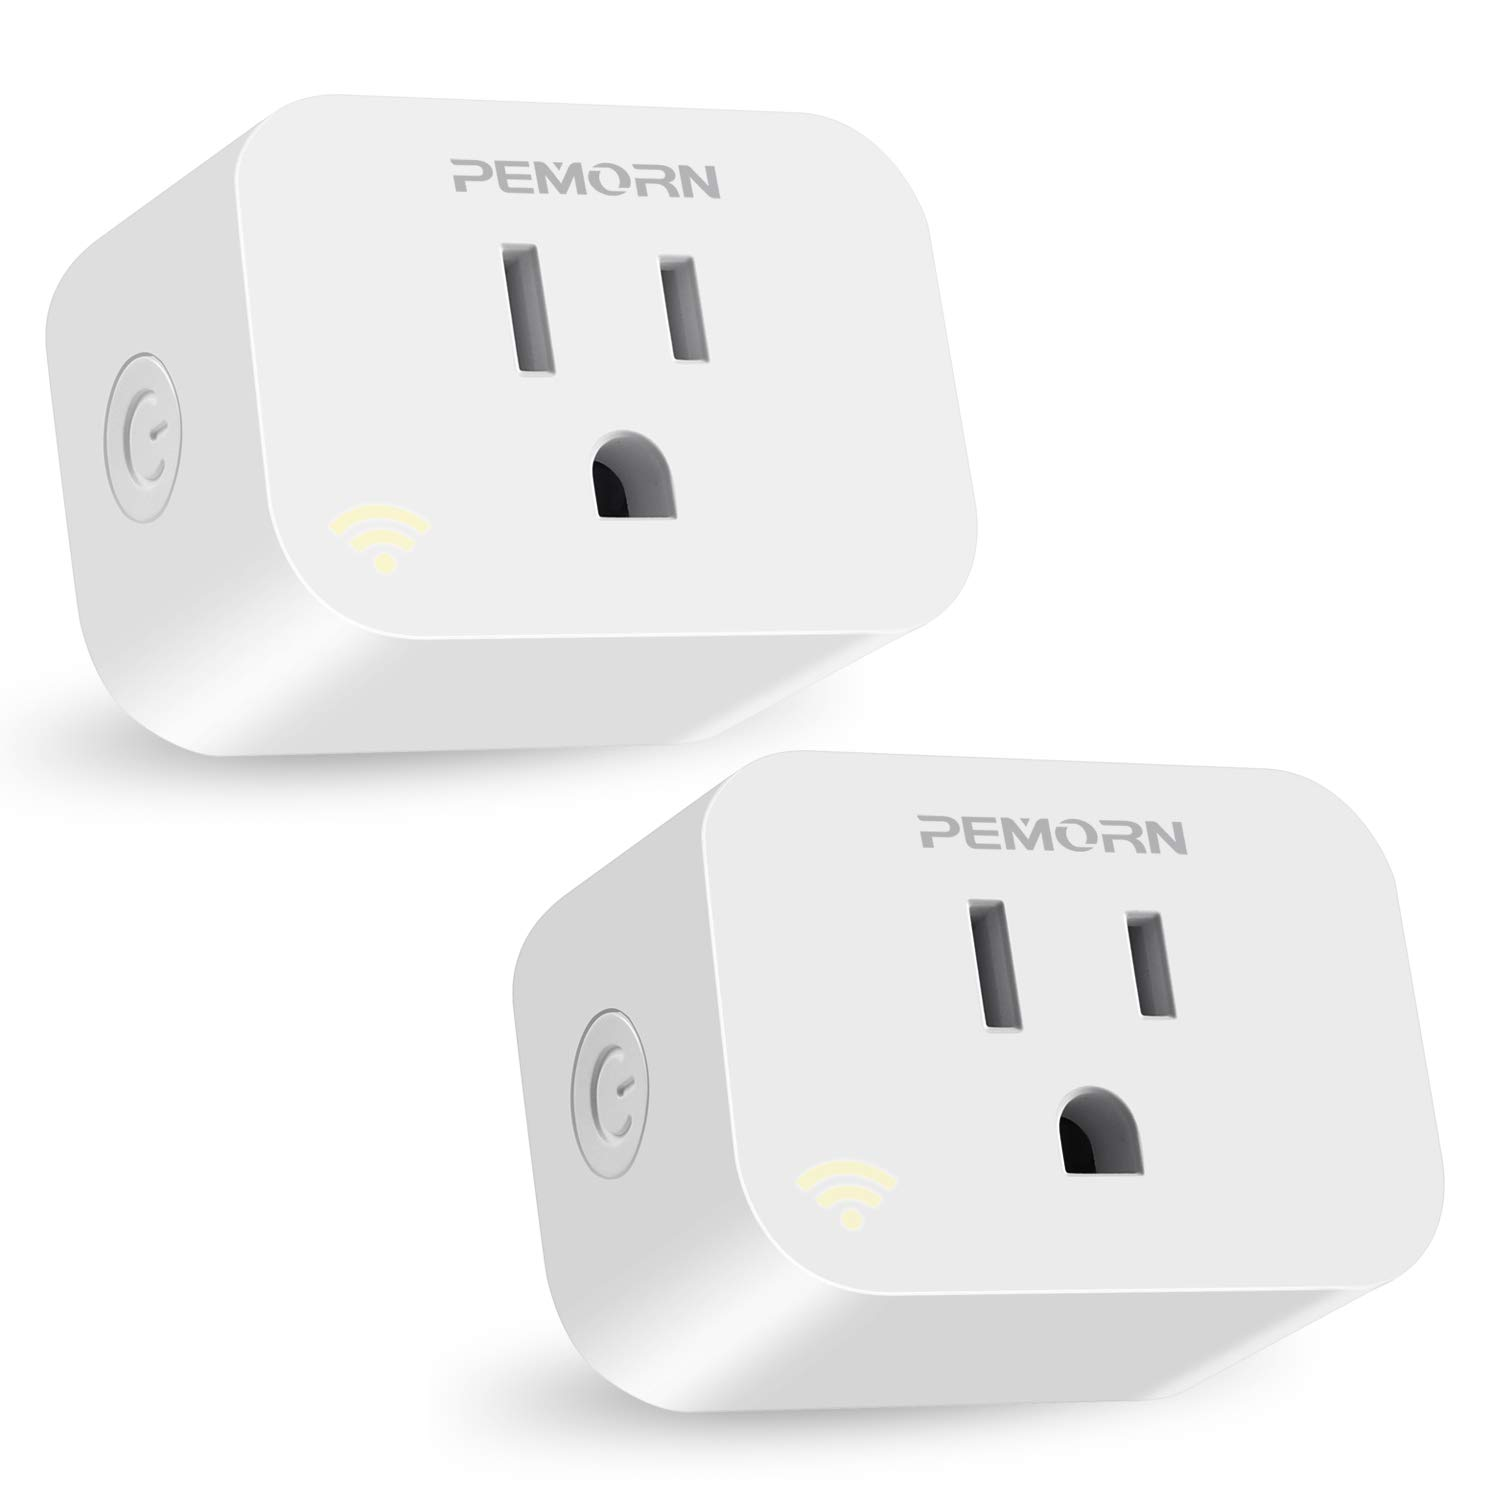 PEMORN WiFi Smart Plug with Energy Monitoring, No Hub Required,Google Assistant and IFTTT (2 Pack)